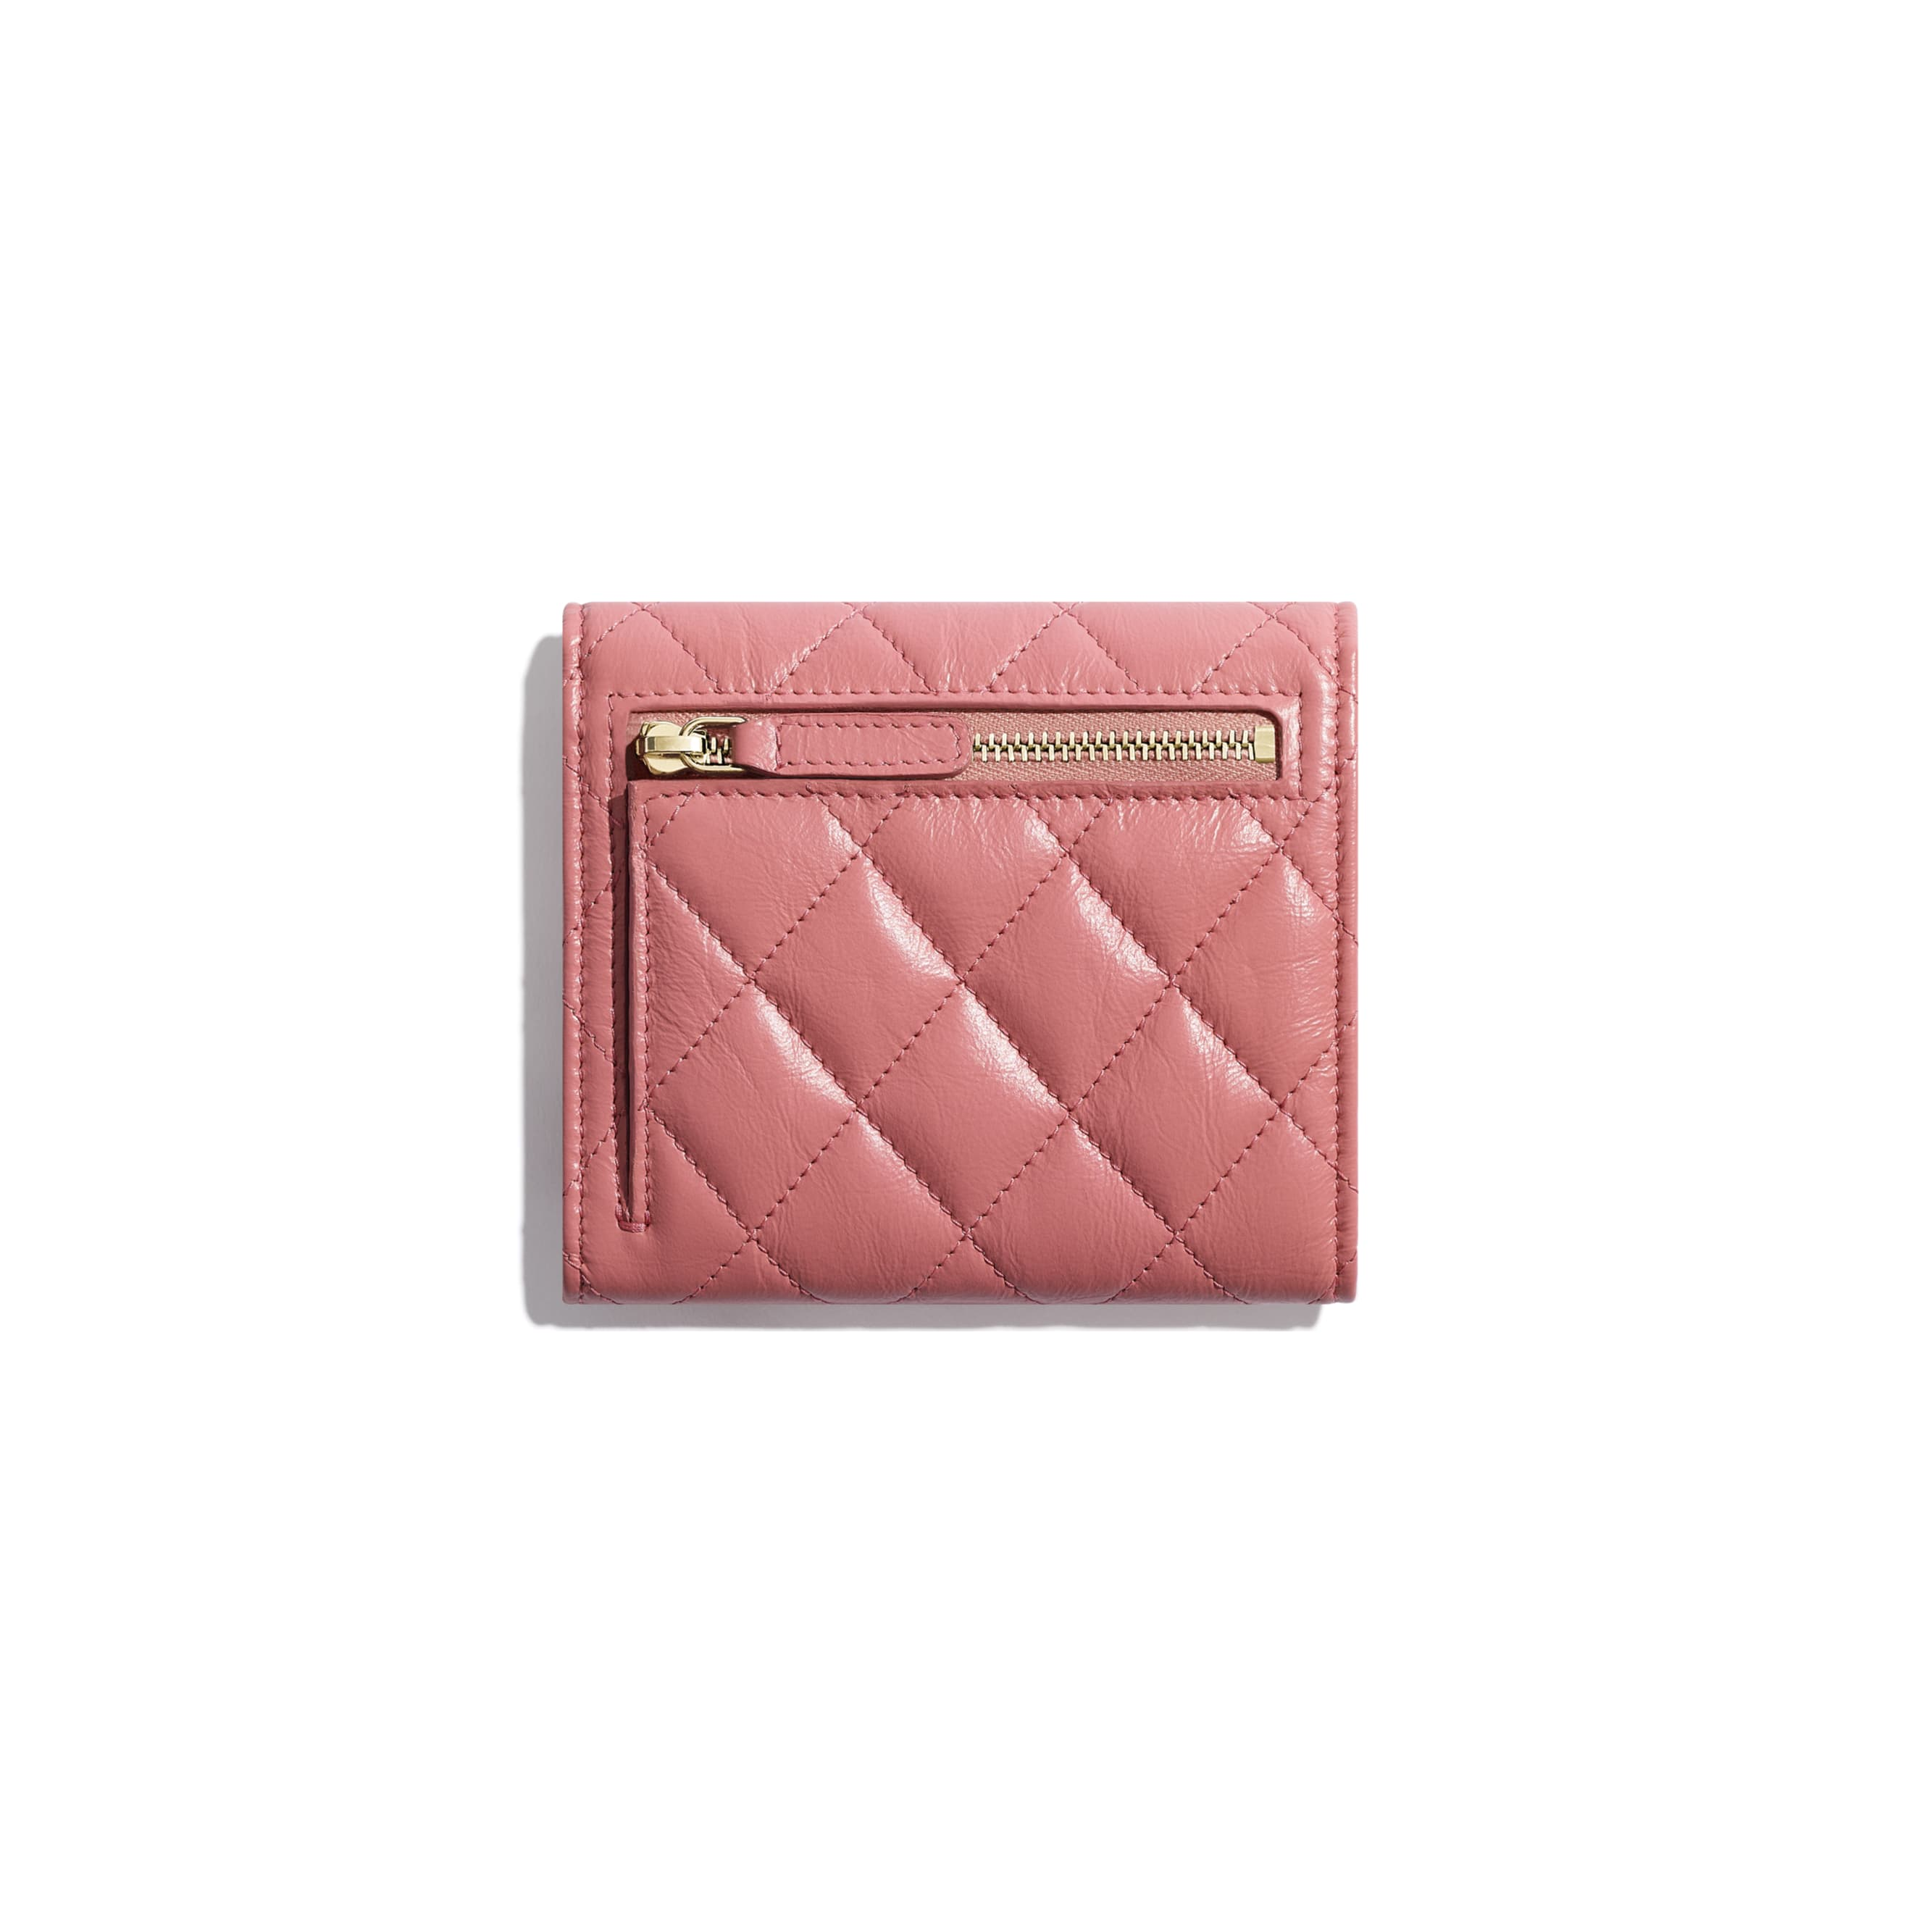 2.55 Small Flap Wallet - Pink - Aged Calfskin & Gold-Tone Metal - Alternative view - see standard sized version